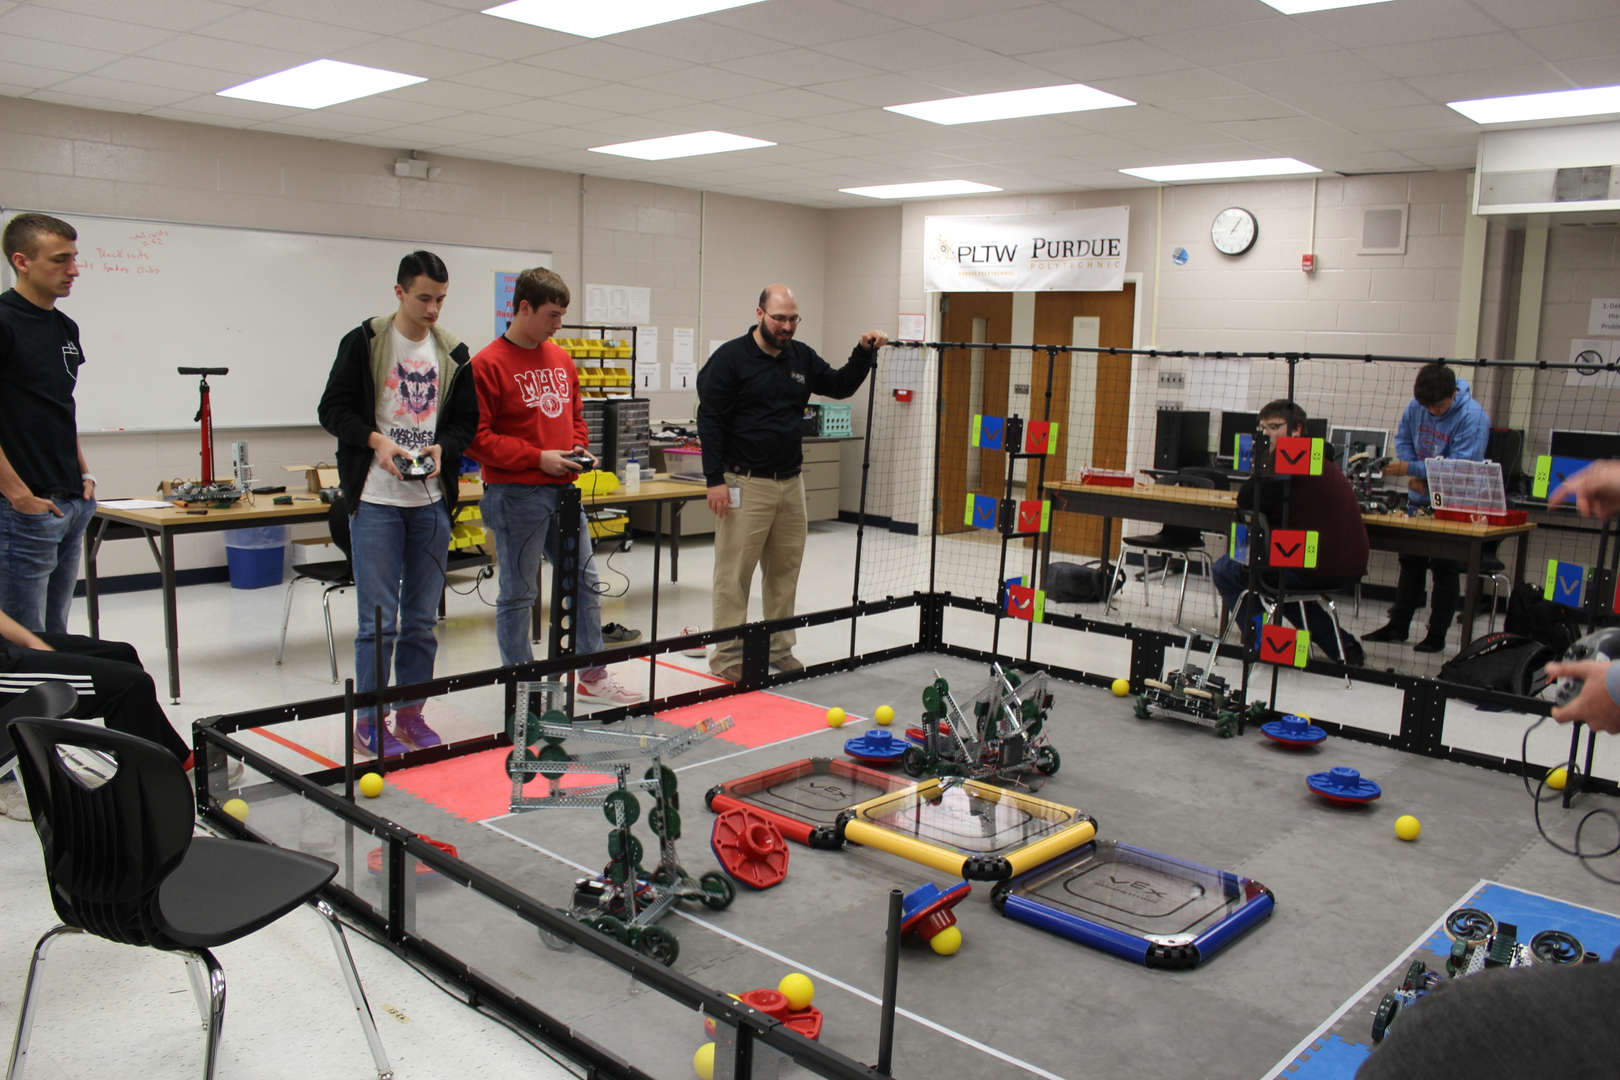 Students showing their abilities in engineering.